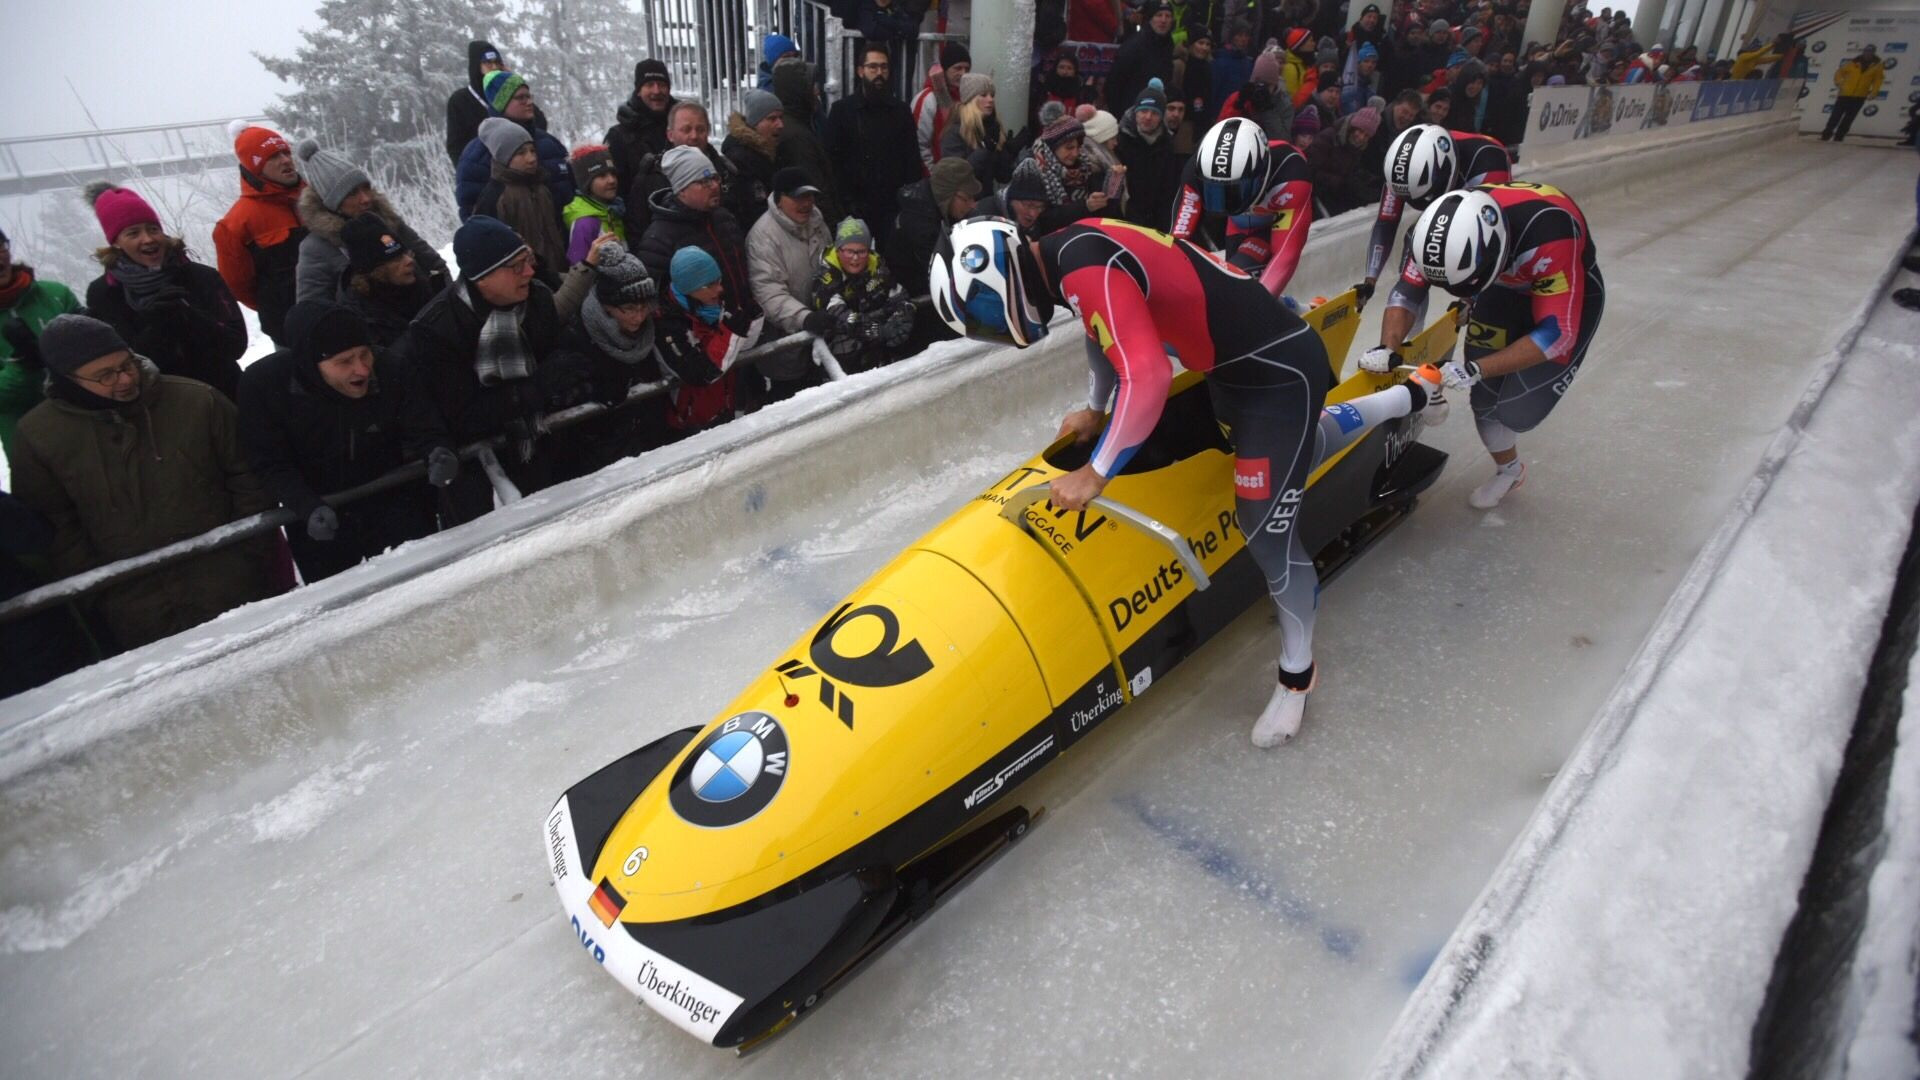 Germans dominate IBSF World Cup four-man bobsleigh with top three places in Winterberg